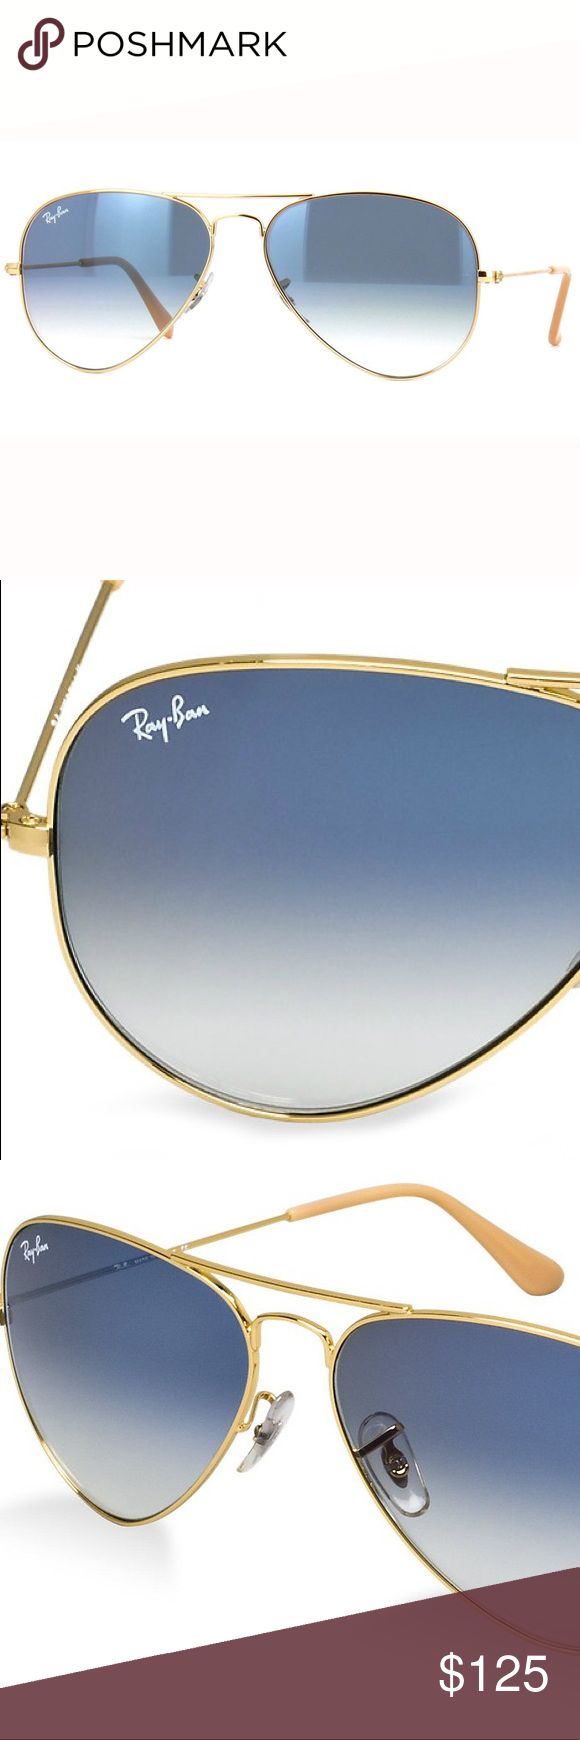 RayBan Gradient Blue Gold Frame RB3025 001/3F 62mm RayBan Gradient Blue Gold Frame Aviators RB3025 001/3F 62mm  •These are 100% Brand New and Authentic Ray-Ban Aviator sunglasses  •Your purchase will be shipped in original box and proper packaging to prevent damage  •Your purchase included everything that comes with the original box (Retail Box, Carrying Case, Manuals, etc.) Ray-Ban Accessories Sunglasses